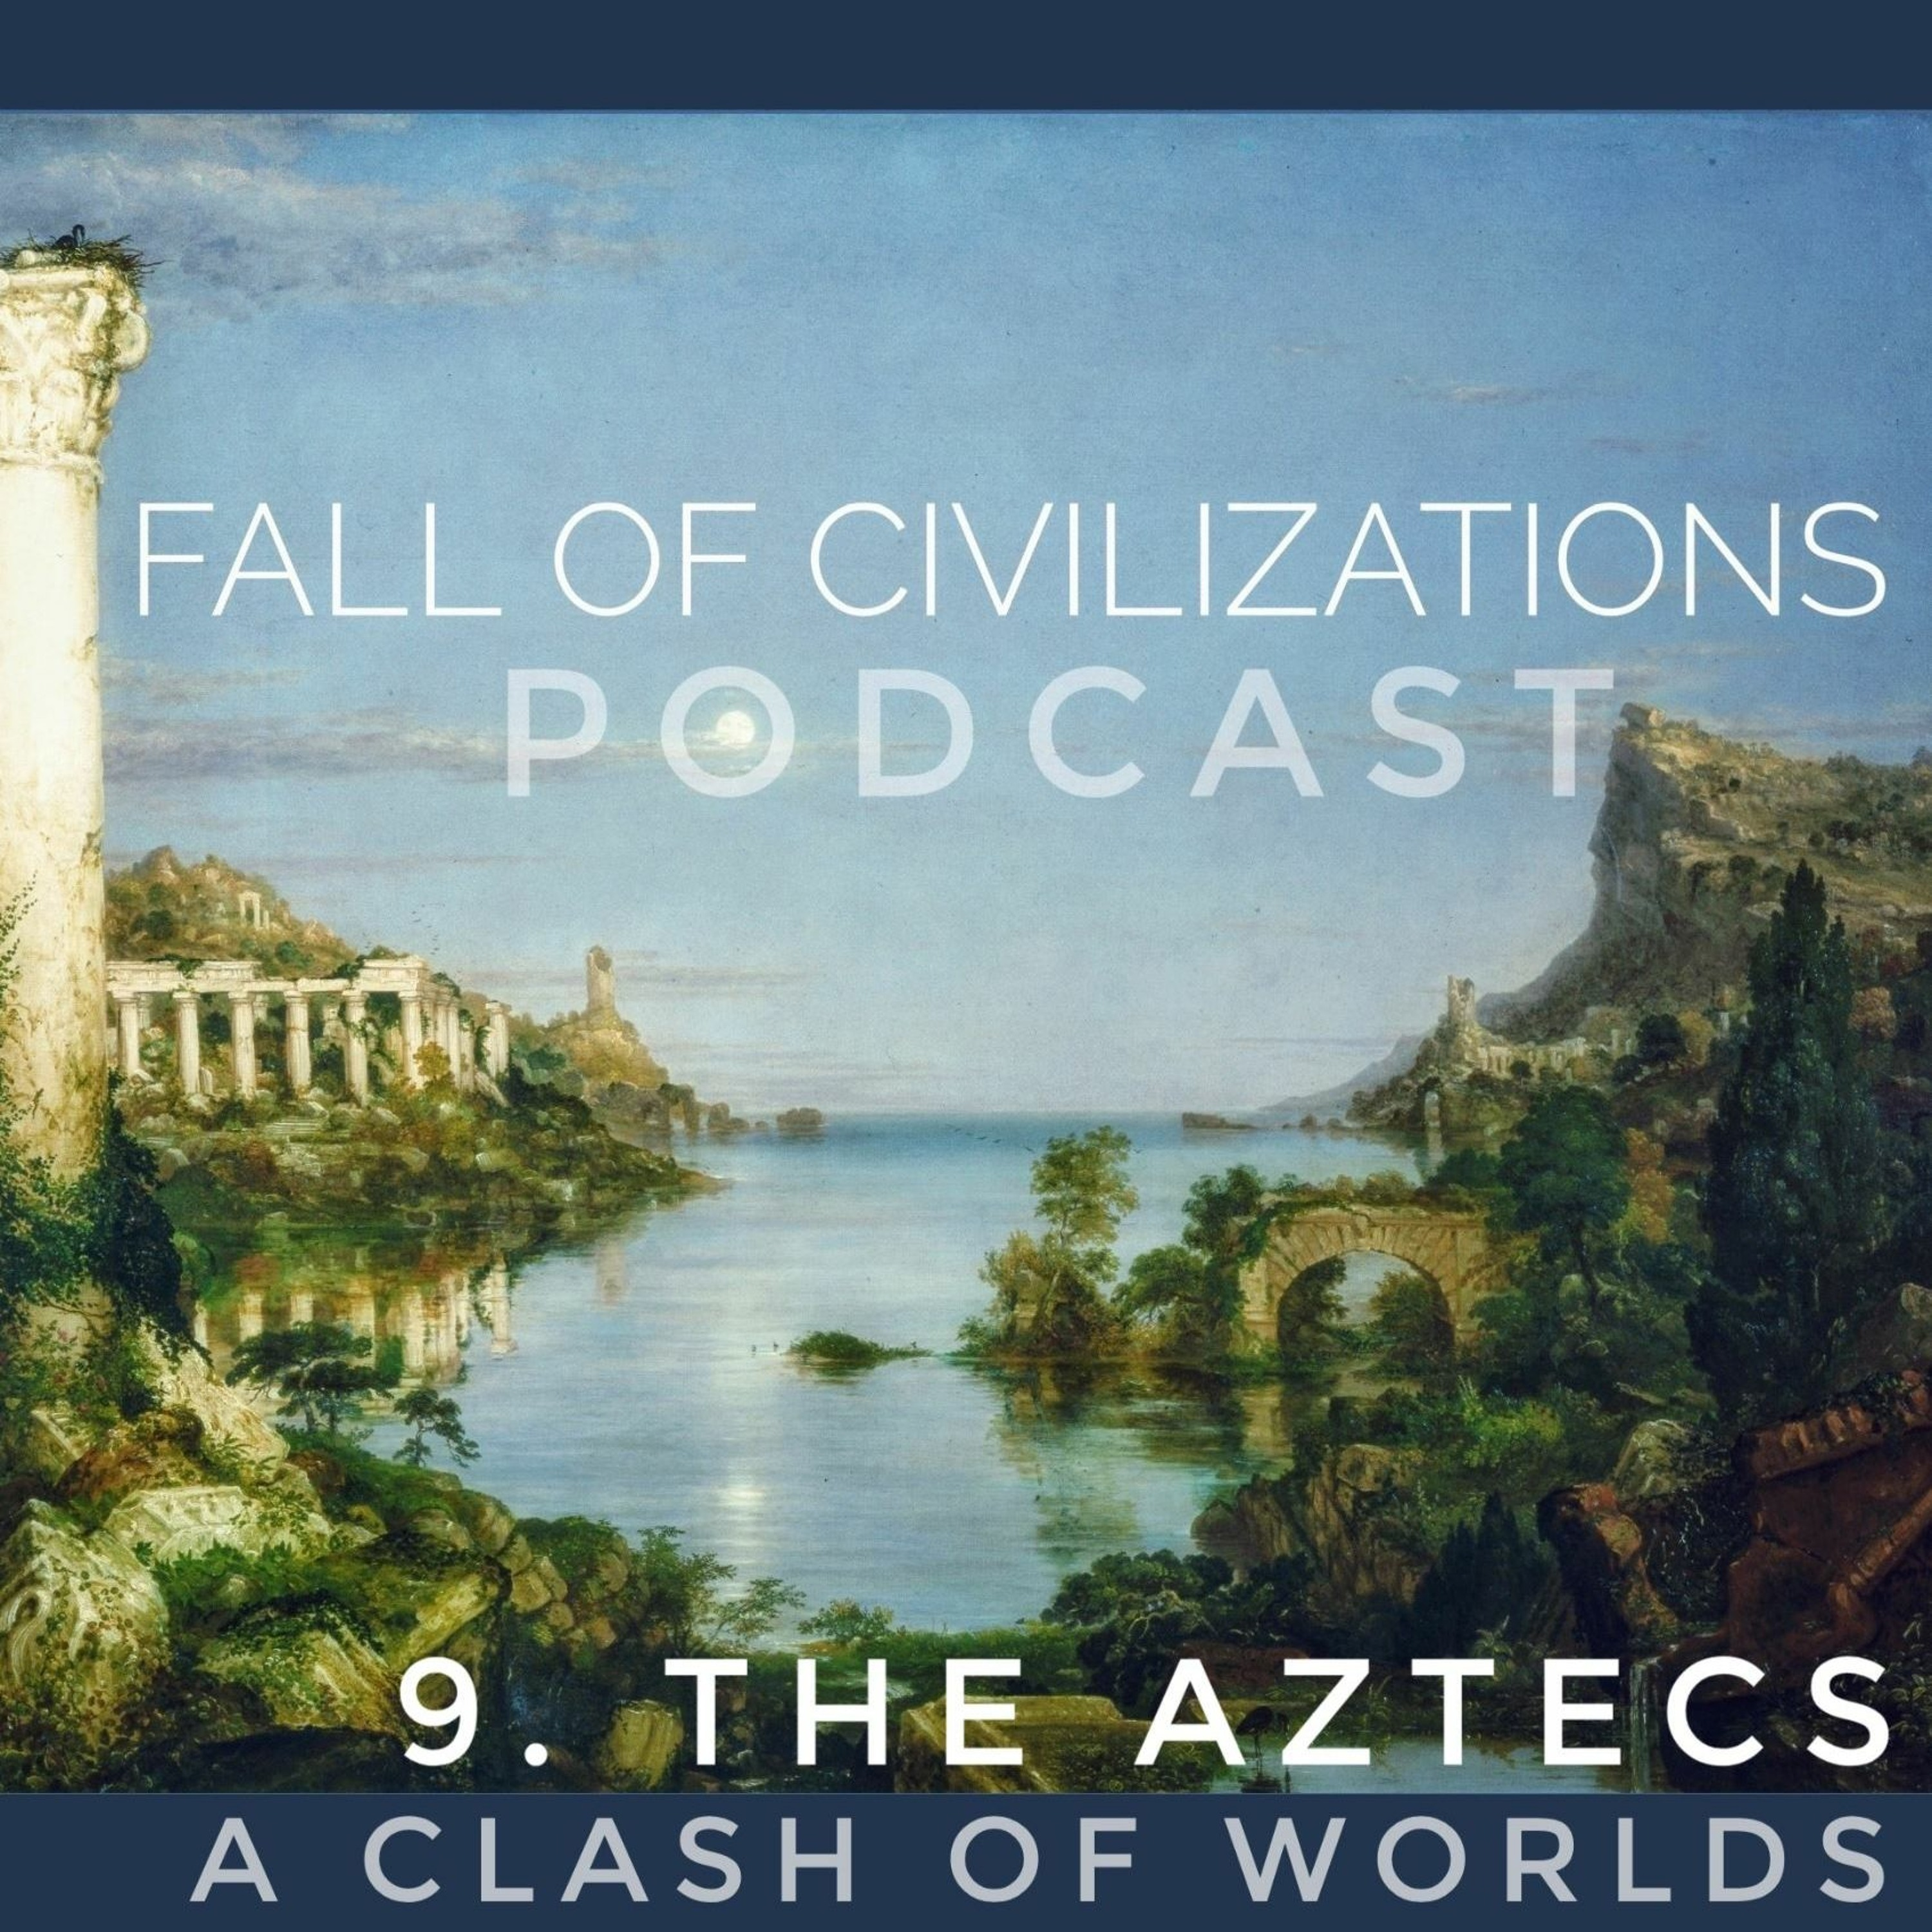 9. The Aztecs - A Clash of Worlds